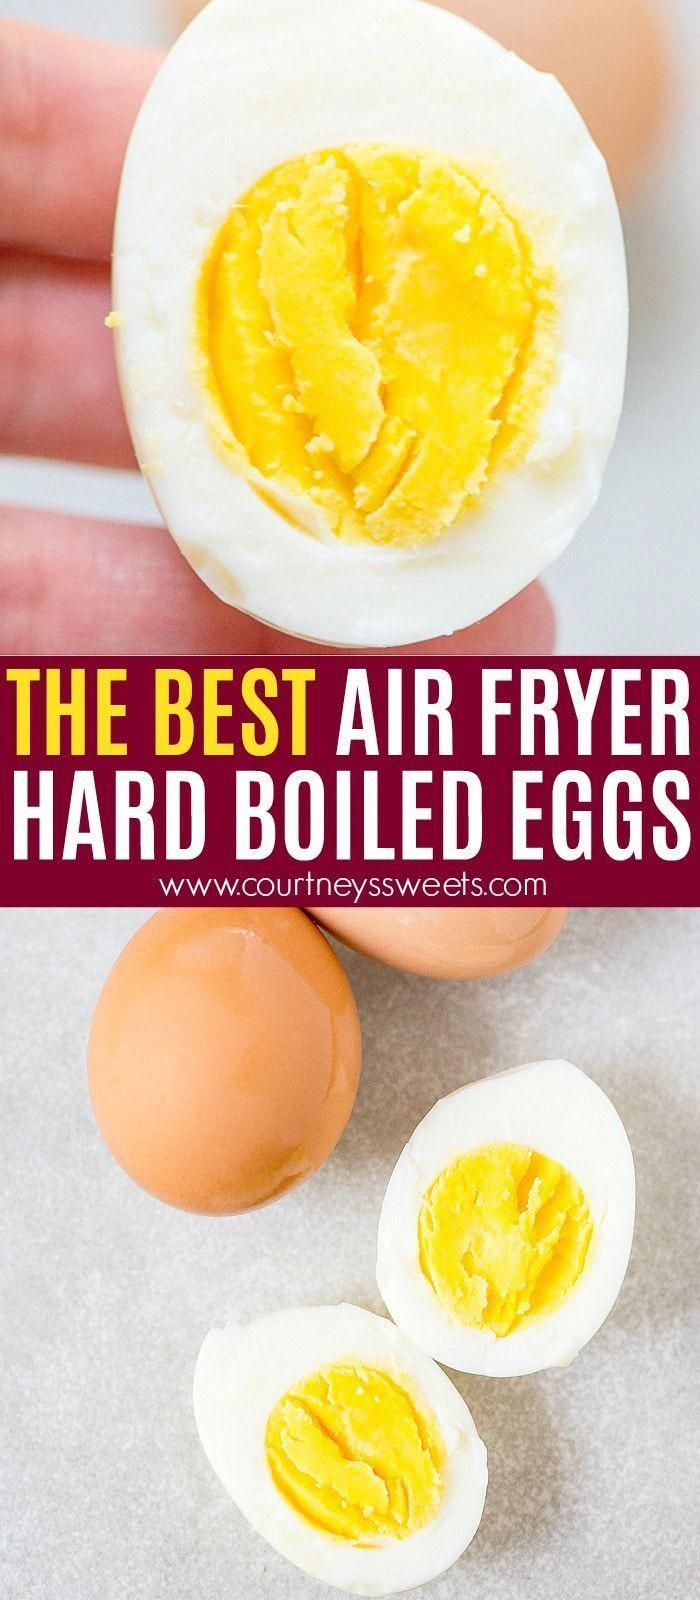 good air fryer foods AirFryerFoods in 2020 Easy hard